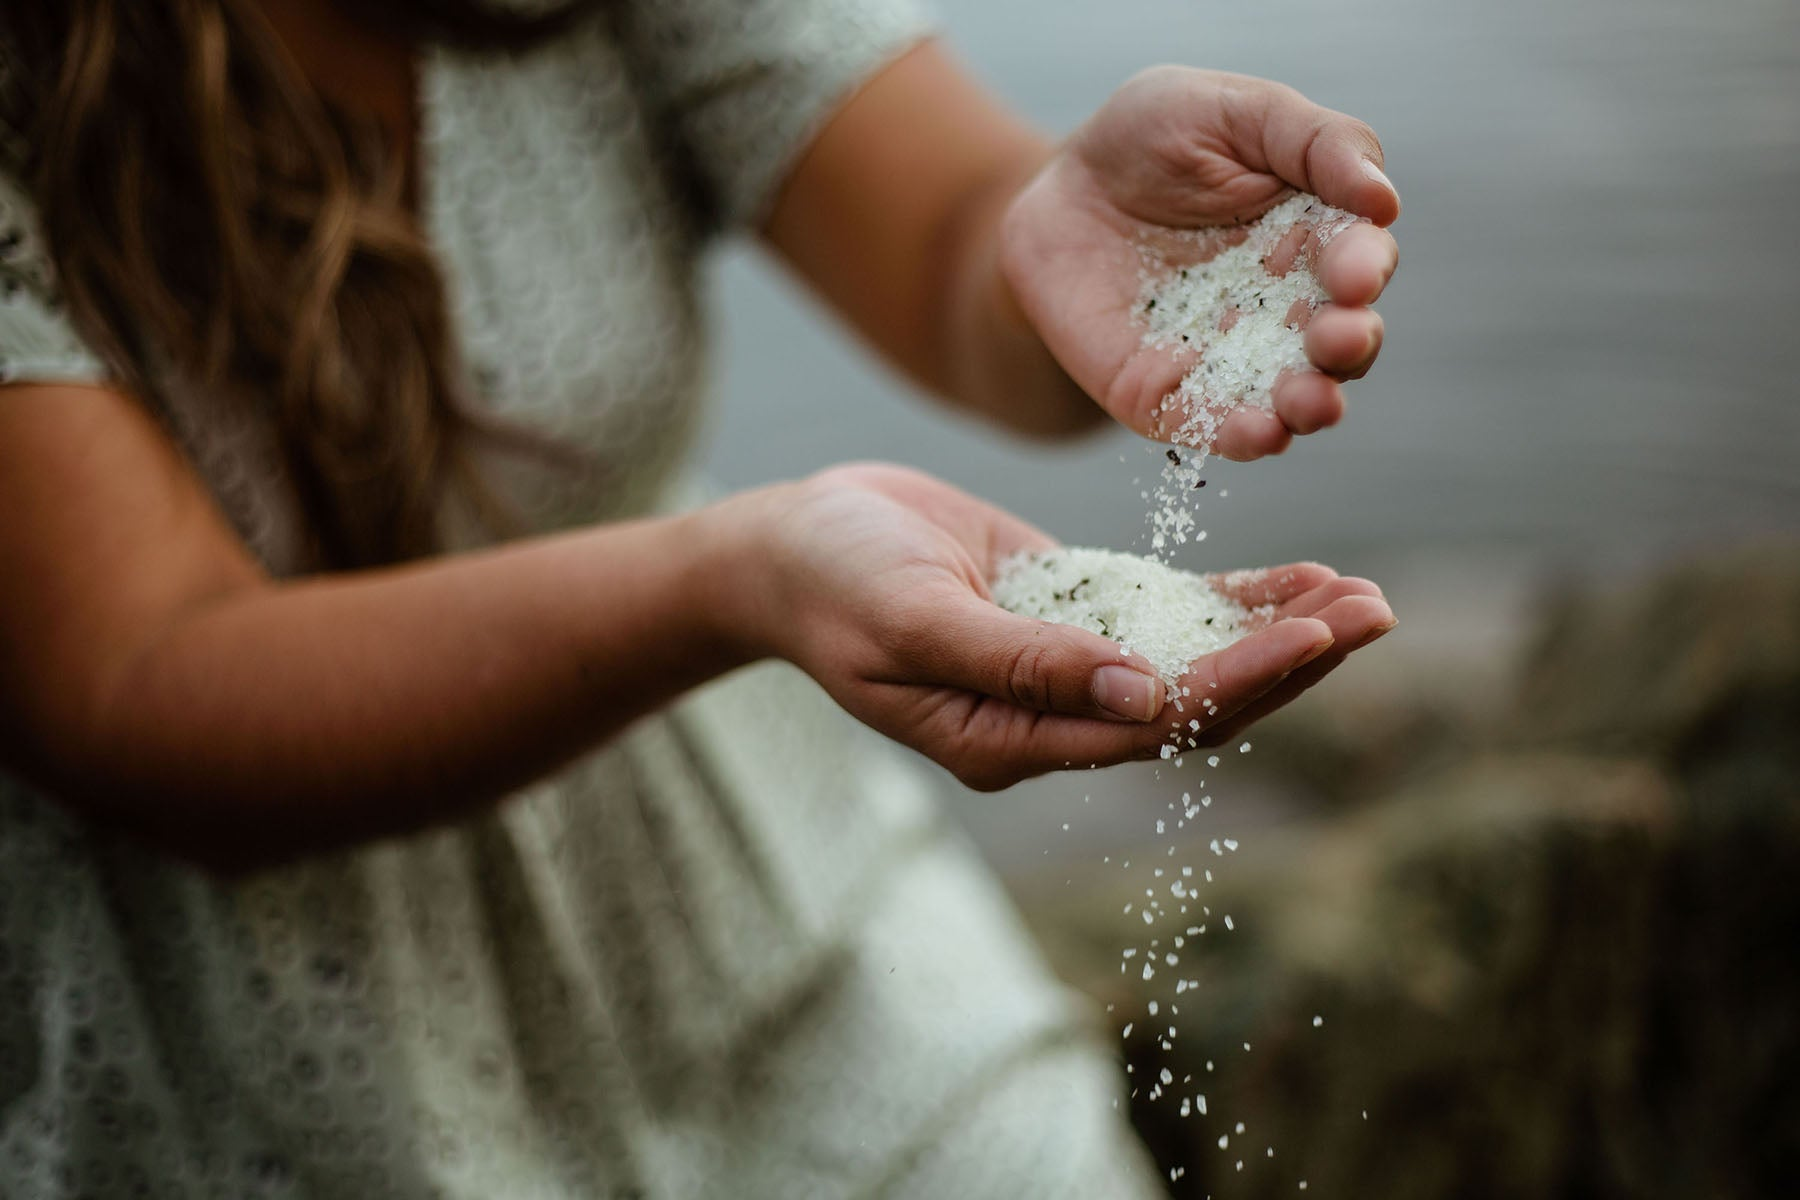 A woman sits beside the ocean and pours a sea salt bath soak from one palm into another